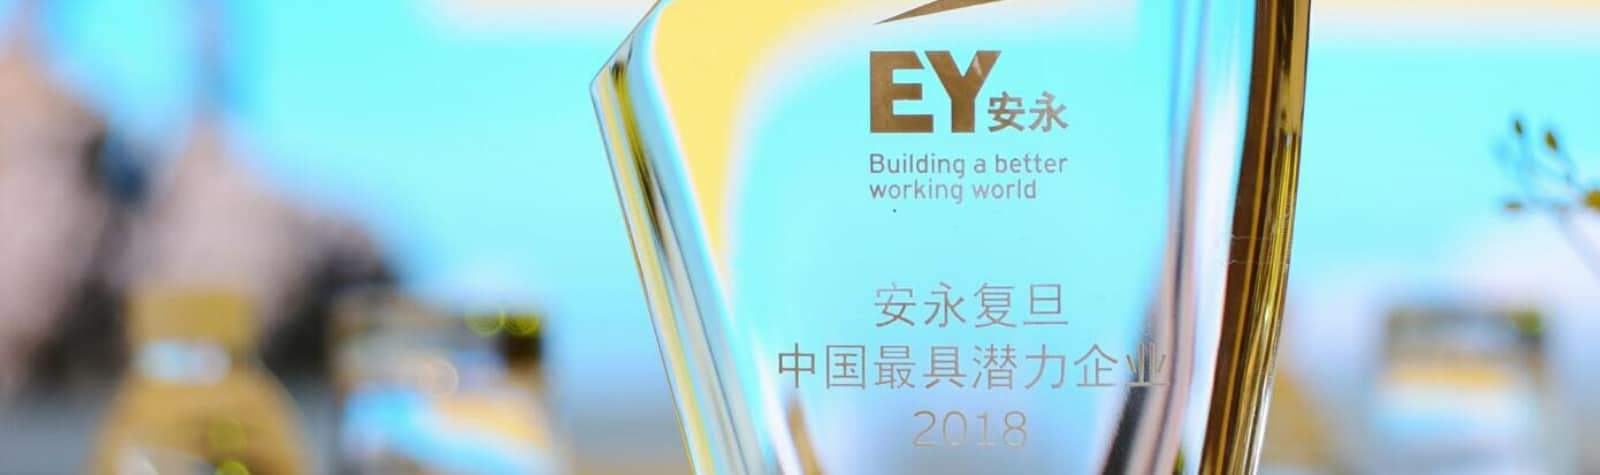 ALO7 Receives Most Promising Company Award 2018